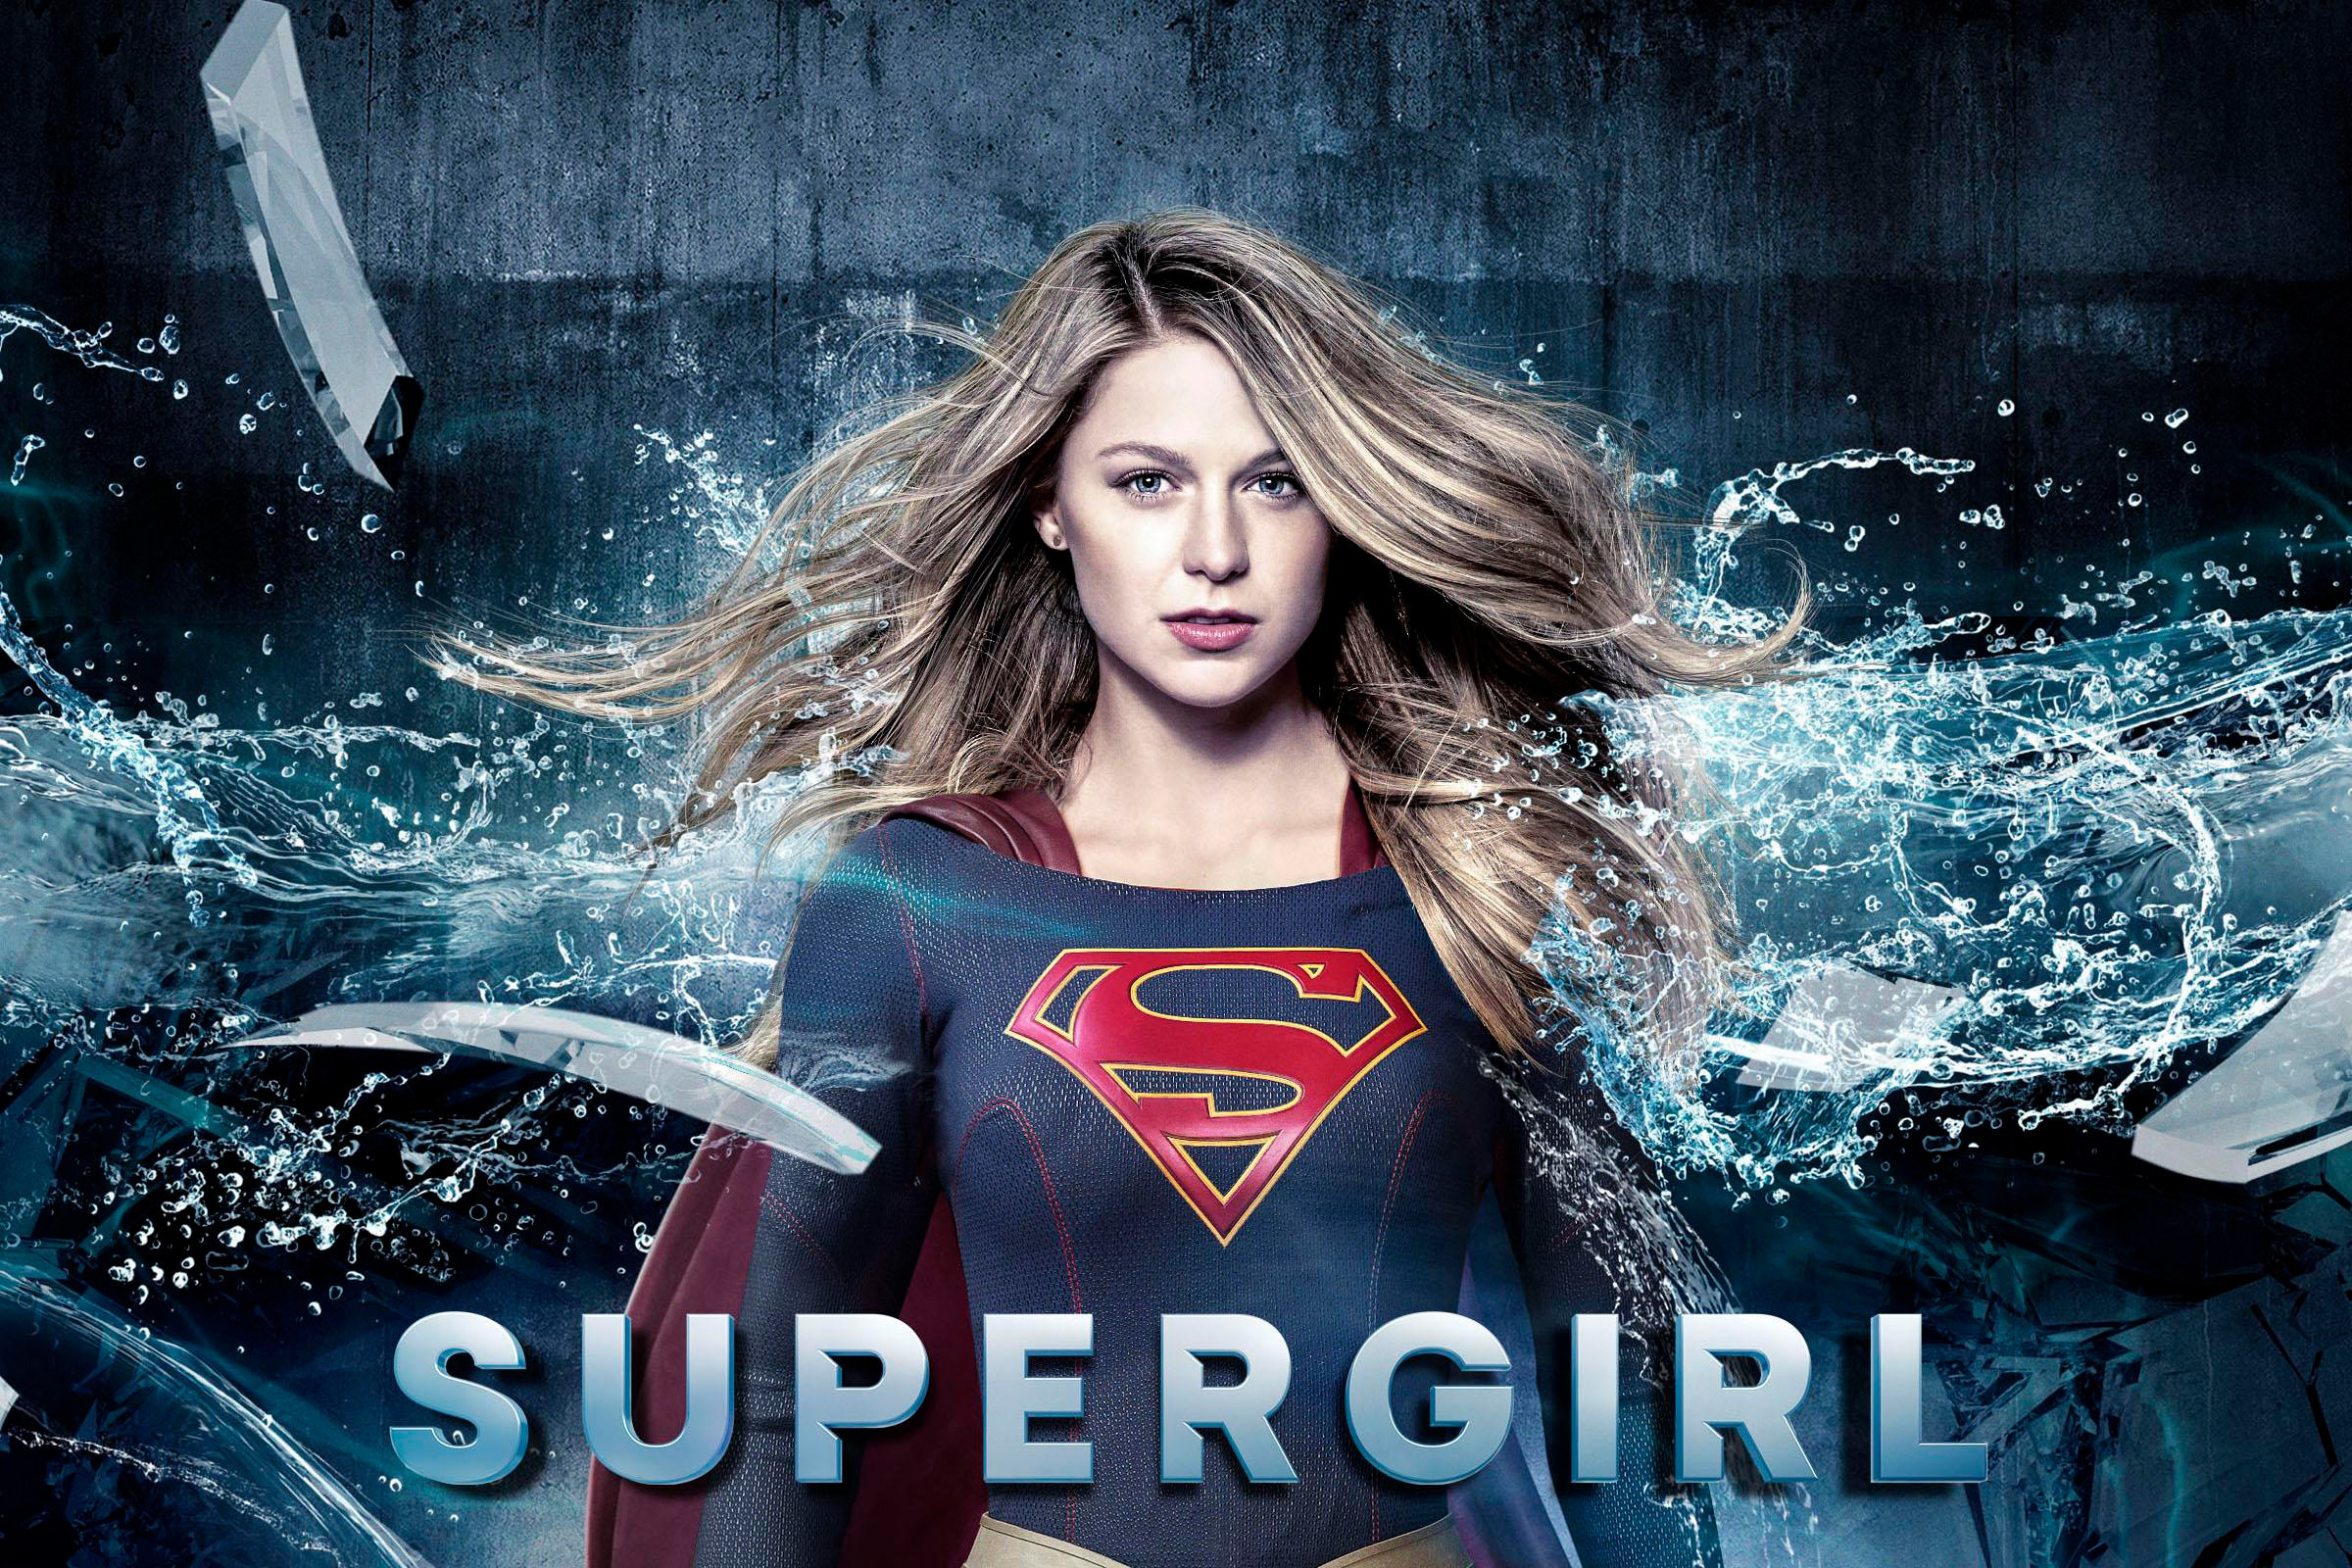 supergirl wallpaper hd